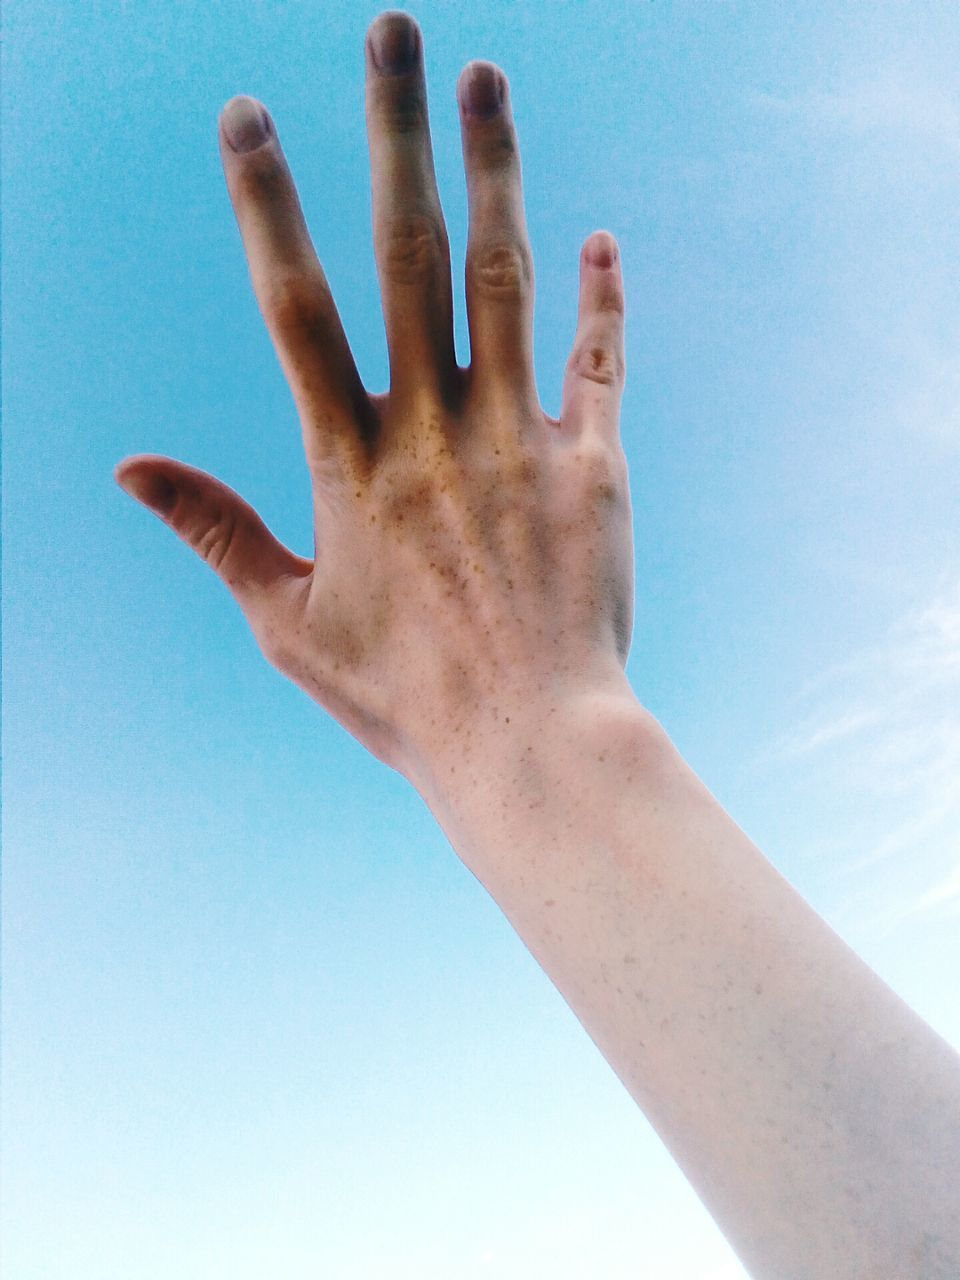 human hand, human finger, human body part, one person, real people, leisure activity, blue, lifestyles, day, sky, low angle view, men, outdoors, women, close-up, palm, people